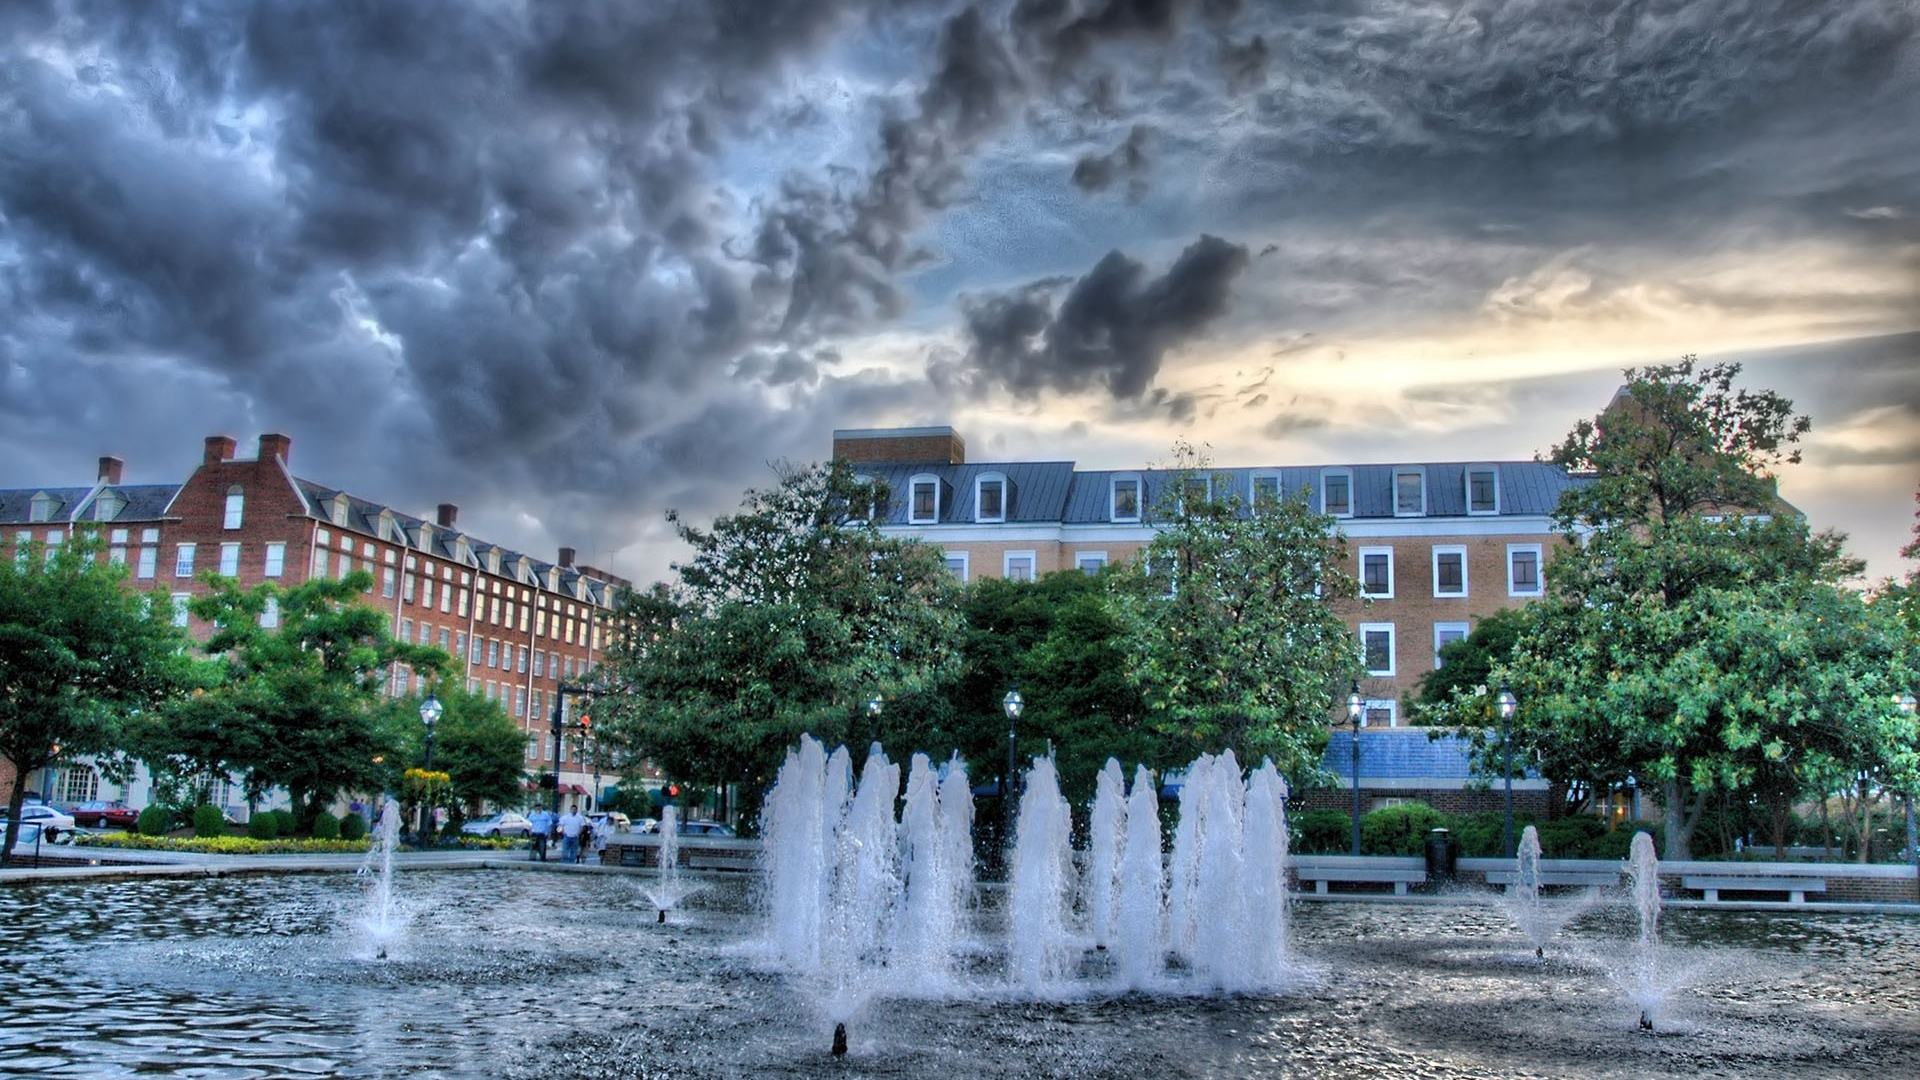 fountain building trees water hdr x